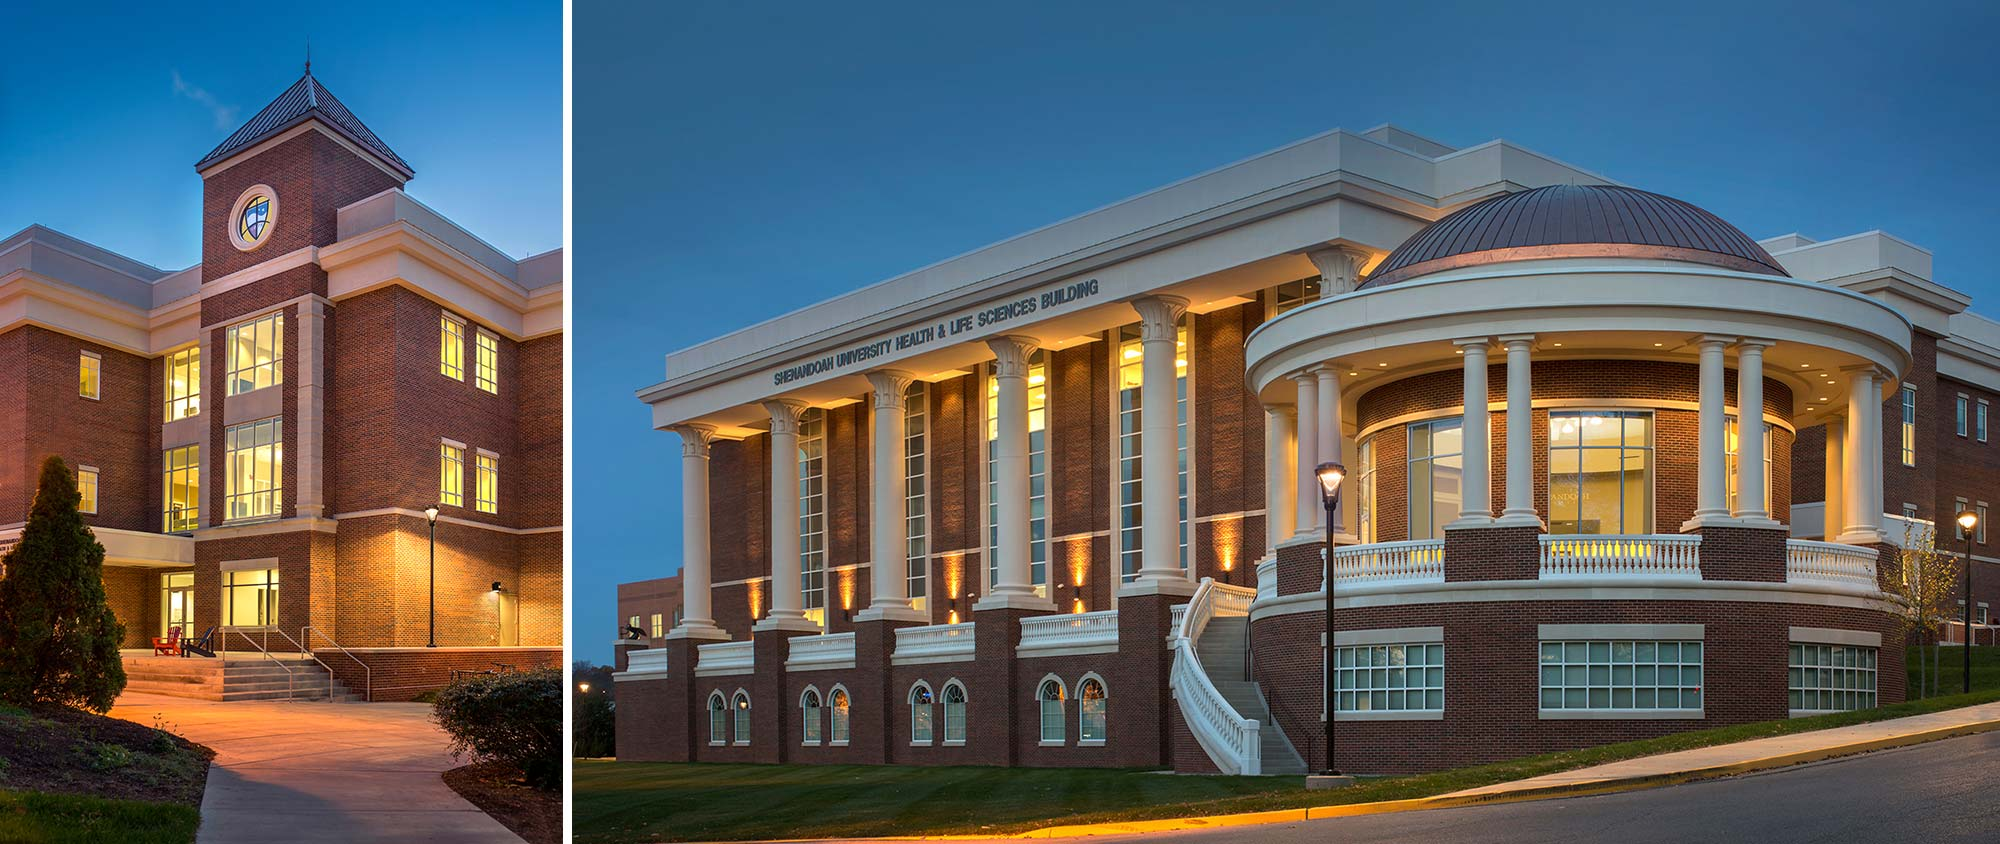 Shenandoah University Health & Life Sciences Building